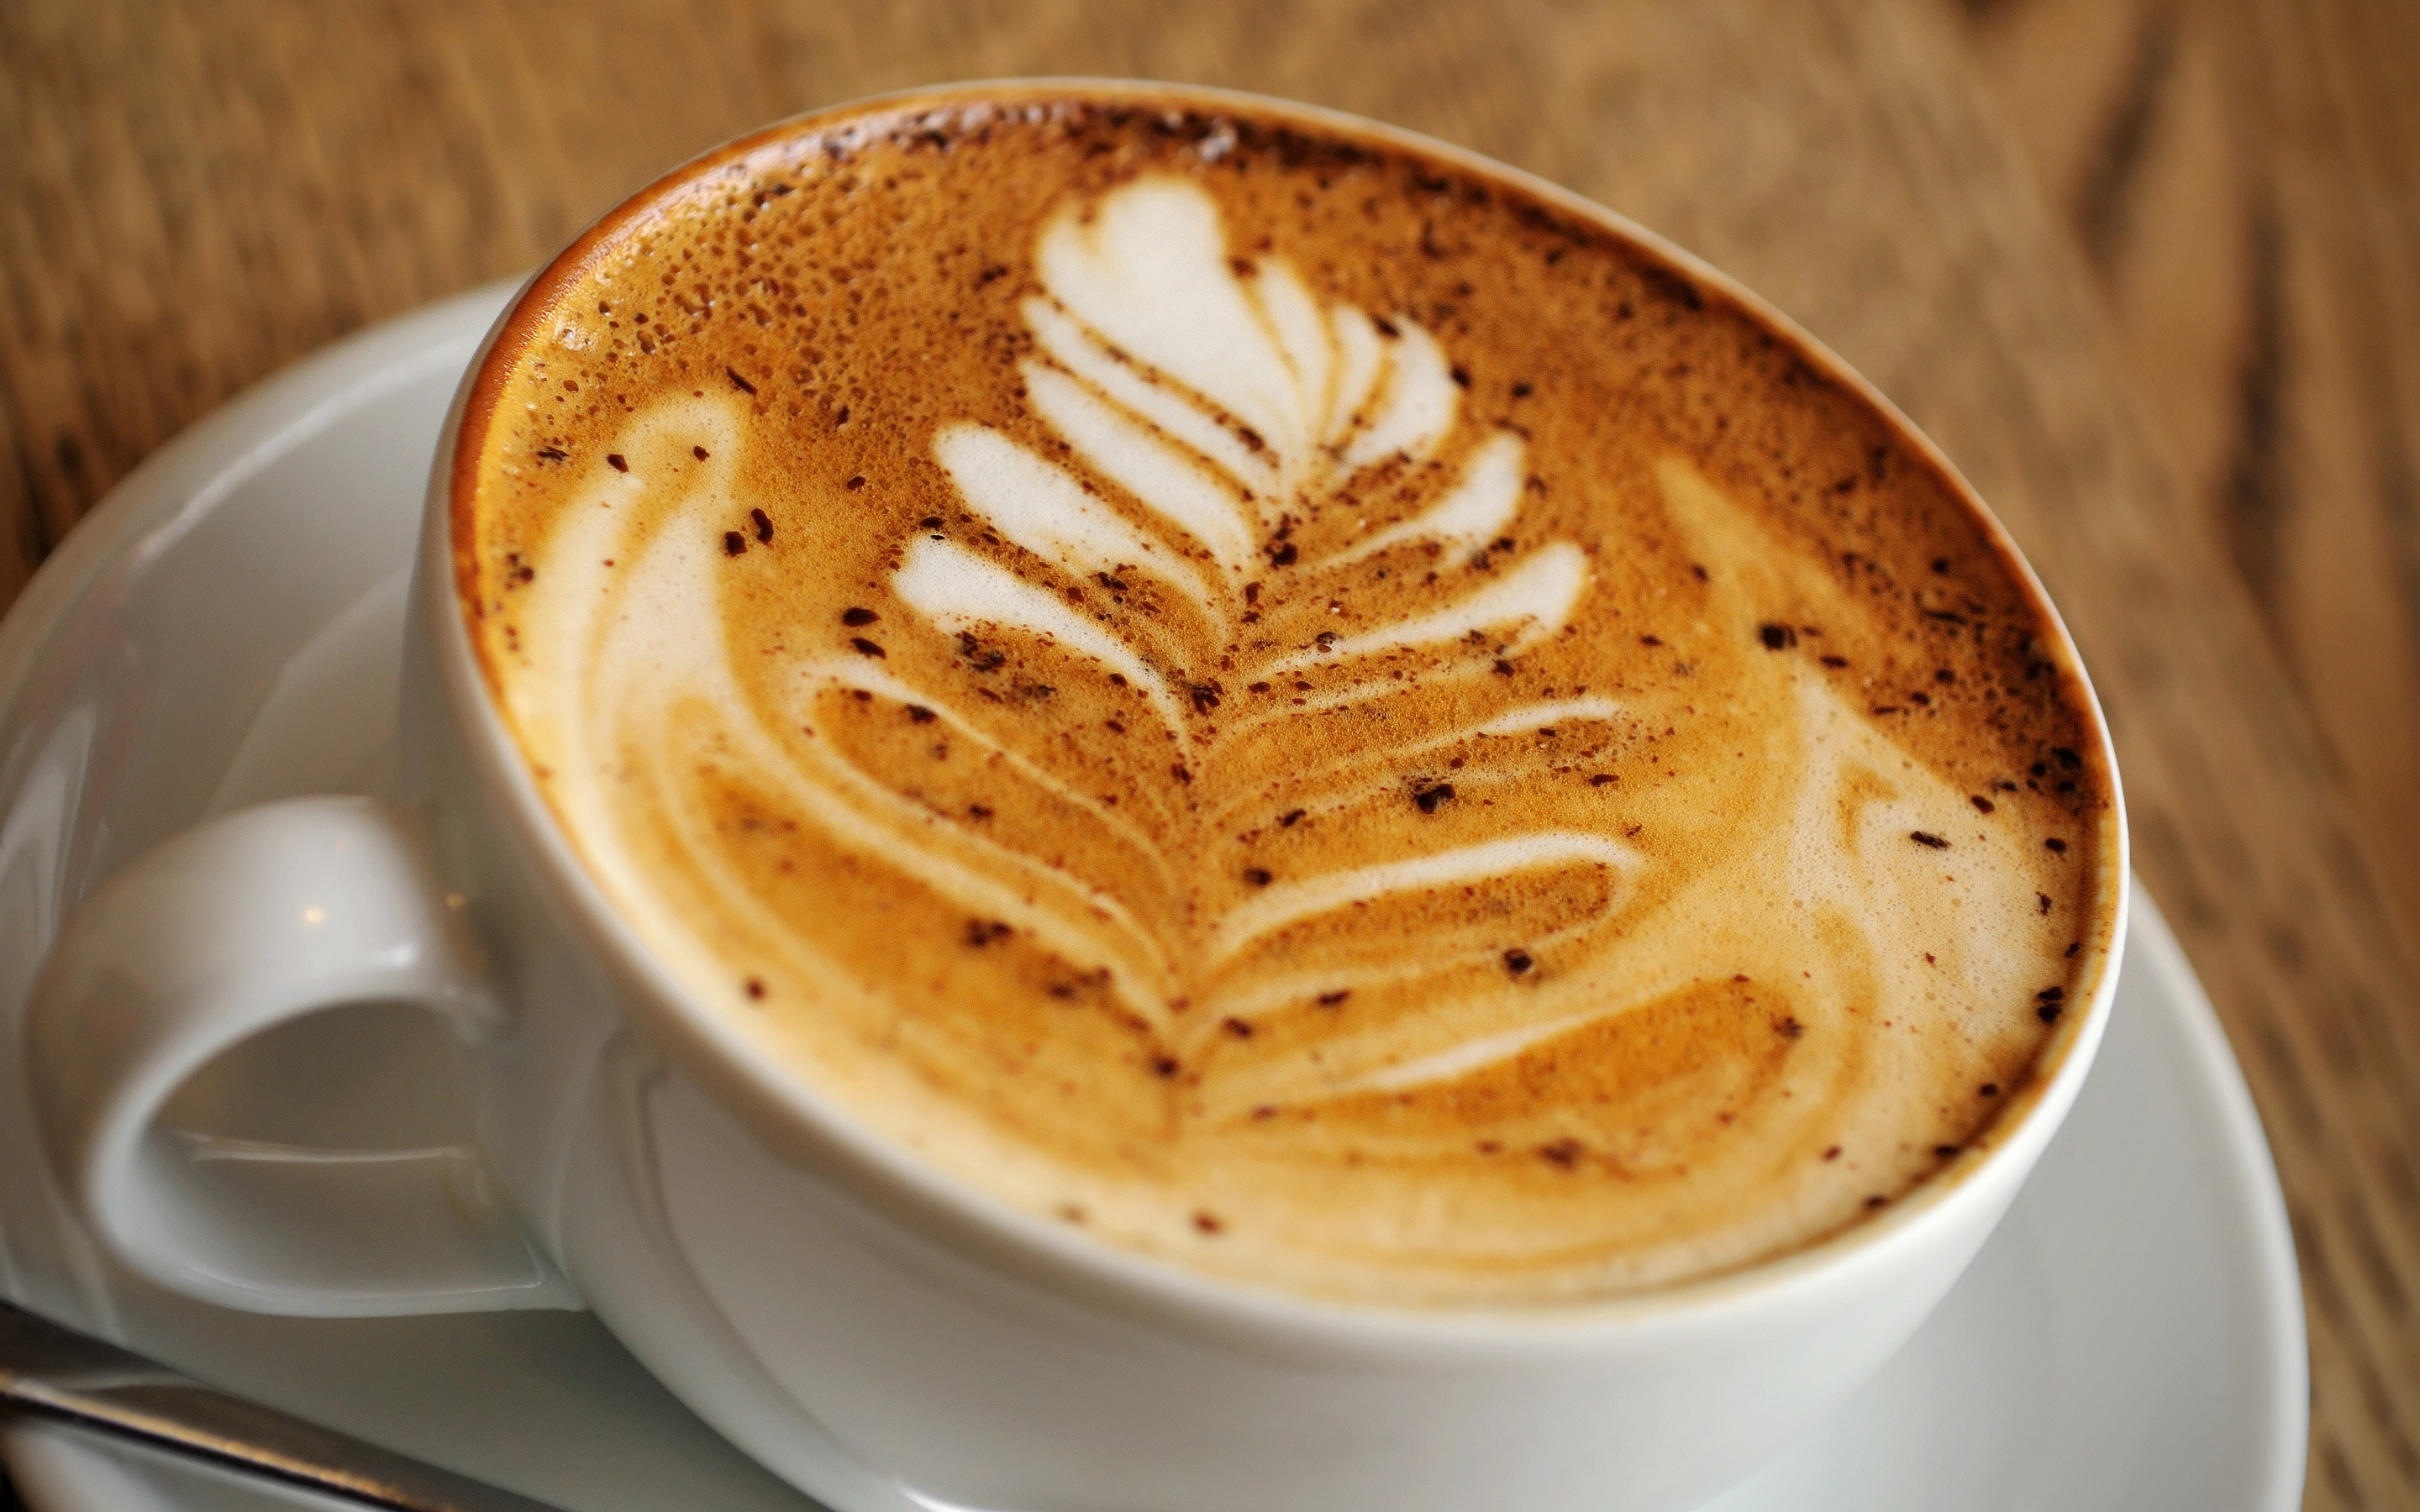 fantastic-cappuccino-wallpaper-38674-39557-hd-wallpapers